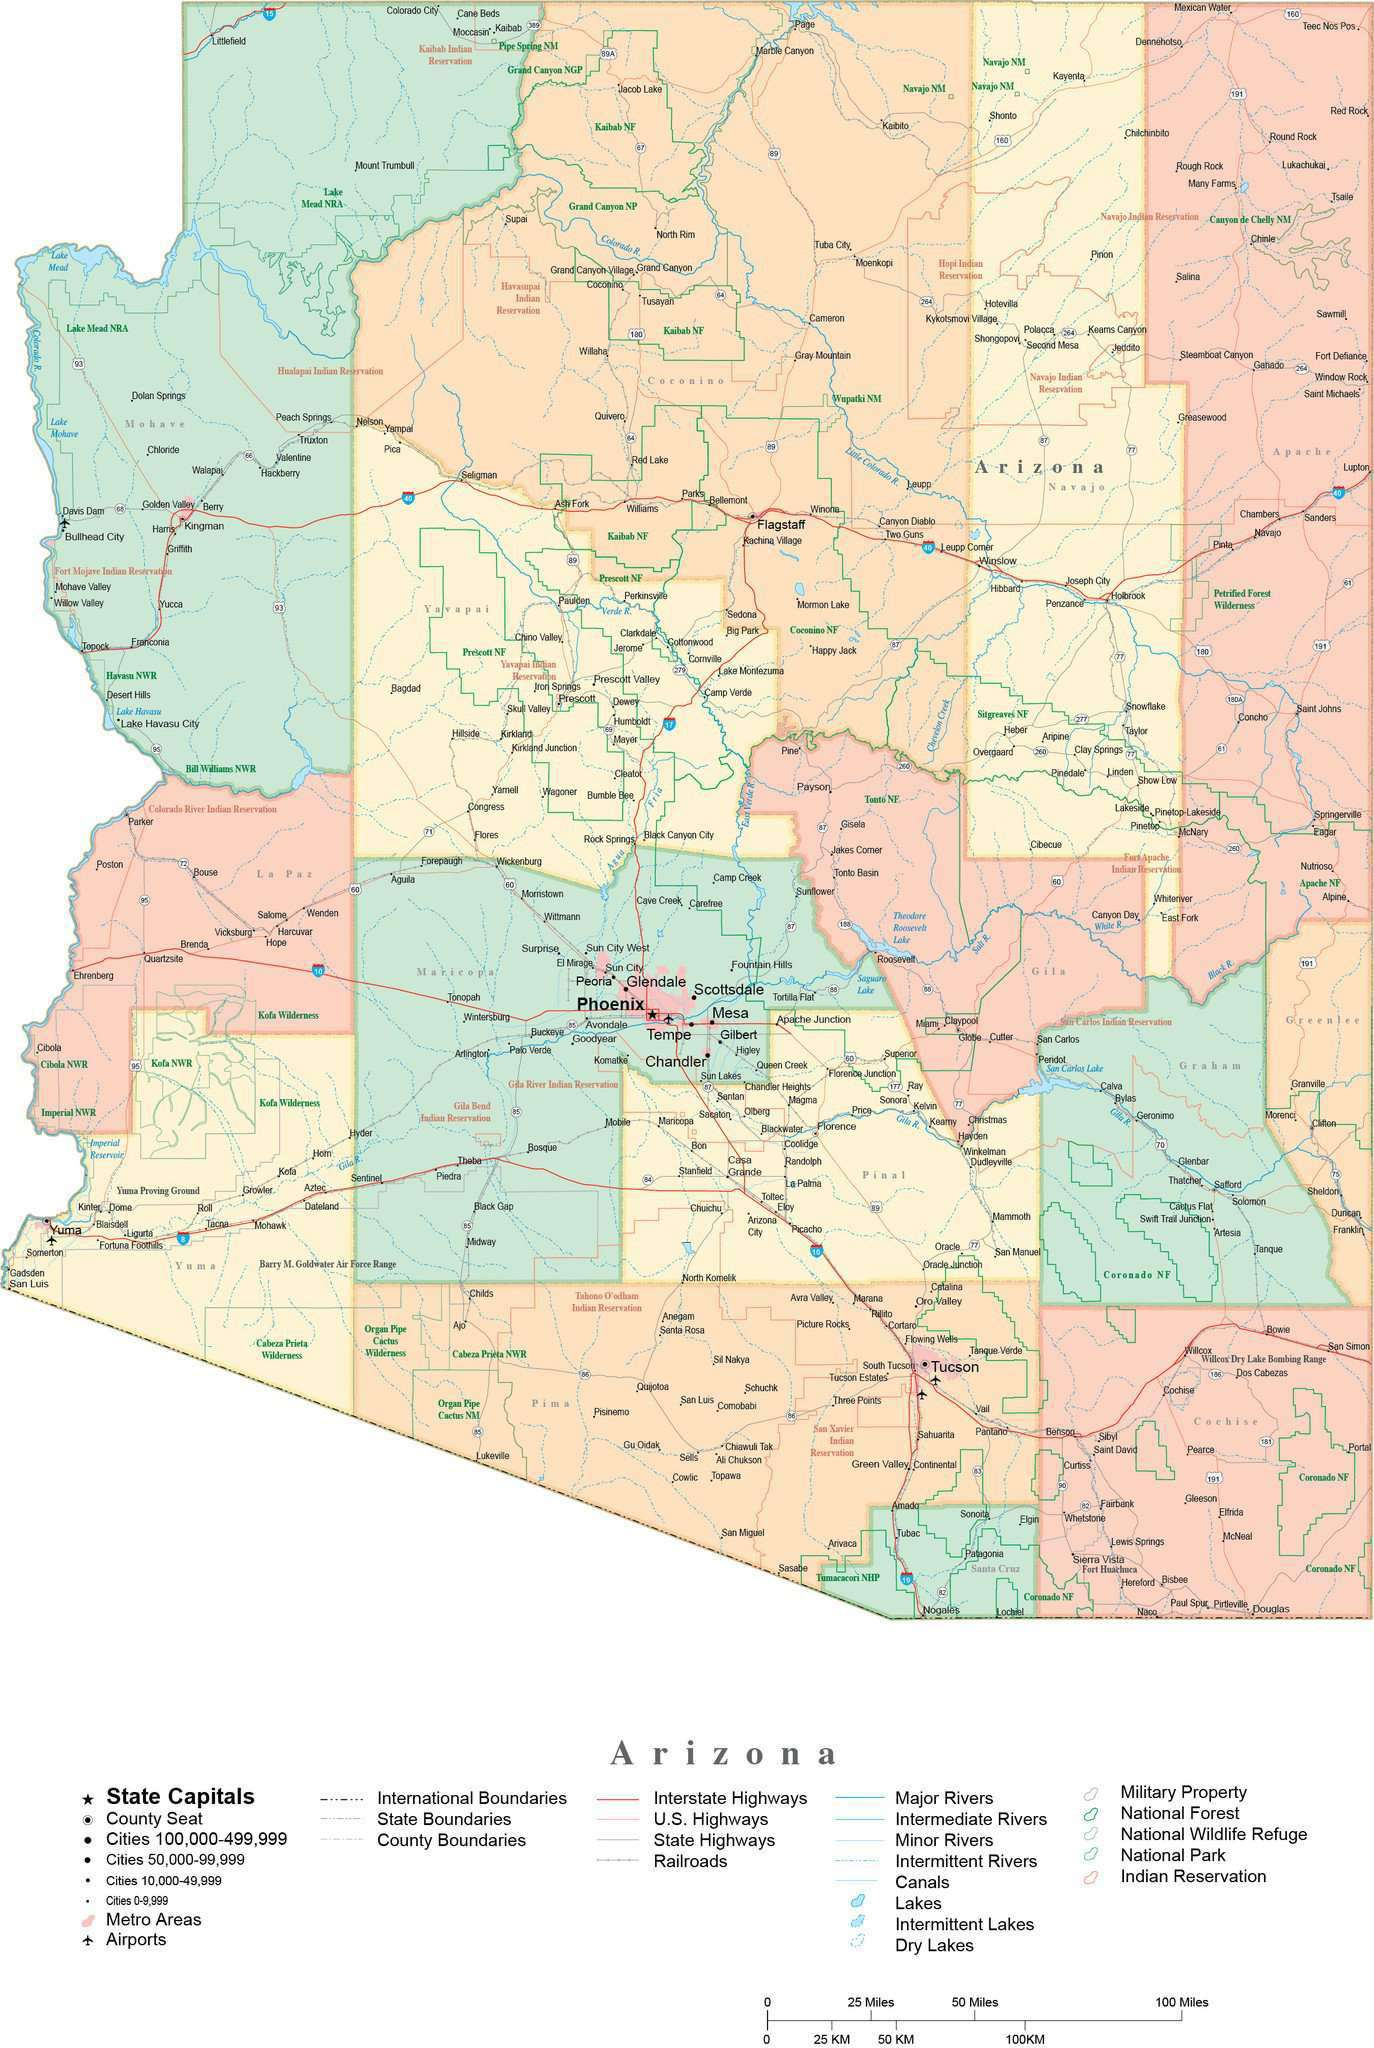 Detailed Arizona Cut-Out Style Digital Map with Counties, Cities, Highways, on driving map of arizona, route 40 arizona, i-10 arizona, highway map of southern arizona, full map of arizona, map of south tucson arizona, freeway map of arizona, interstate 269 map, trail map of arizona, map of california and arizona, map of sun lakes arizona, old road maps arizona, fault line map of arizona, interstate 10 arizona, us road map arizona, map of interstate 40 arizona, state highway map of arizona, arizona state map of arizona, map of 202 loop arizona, interstates in arizona,